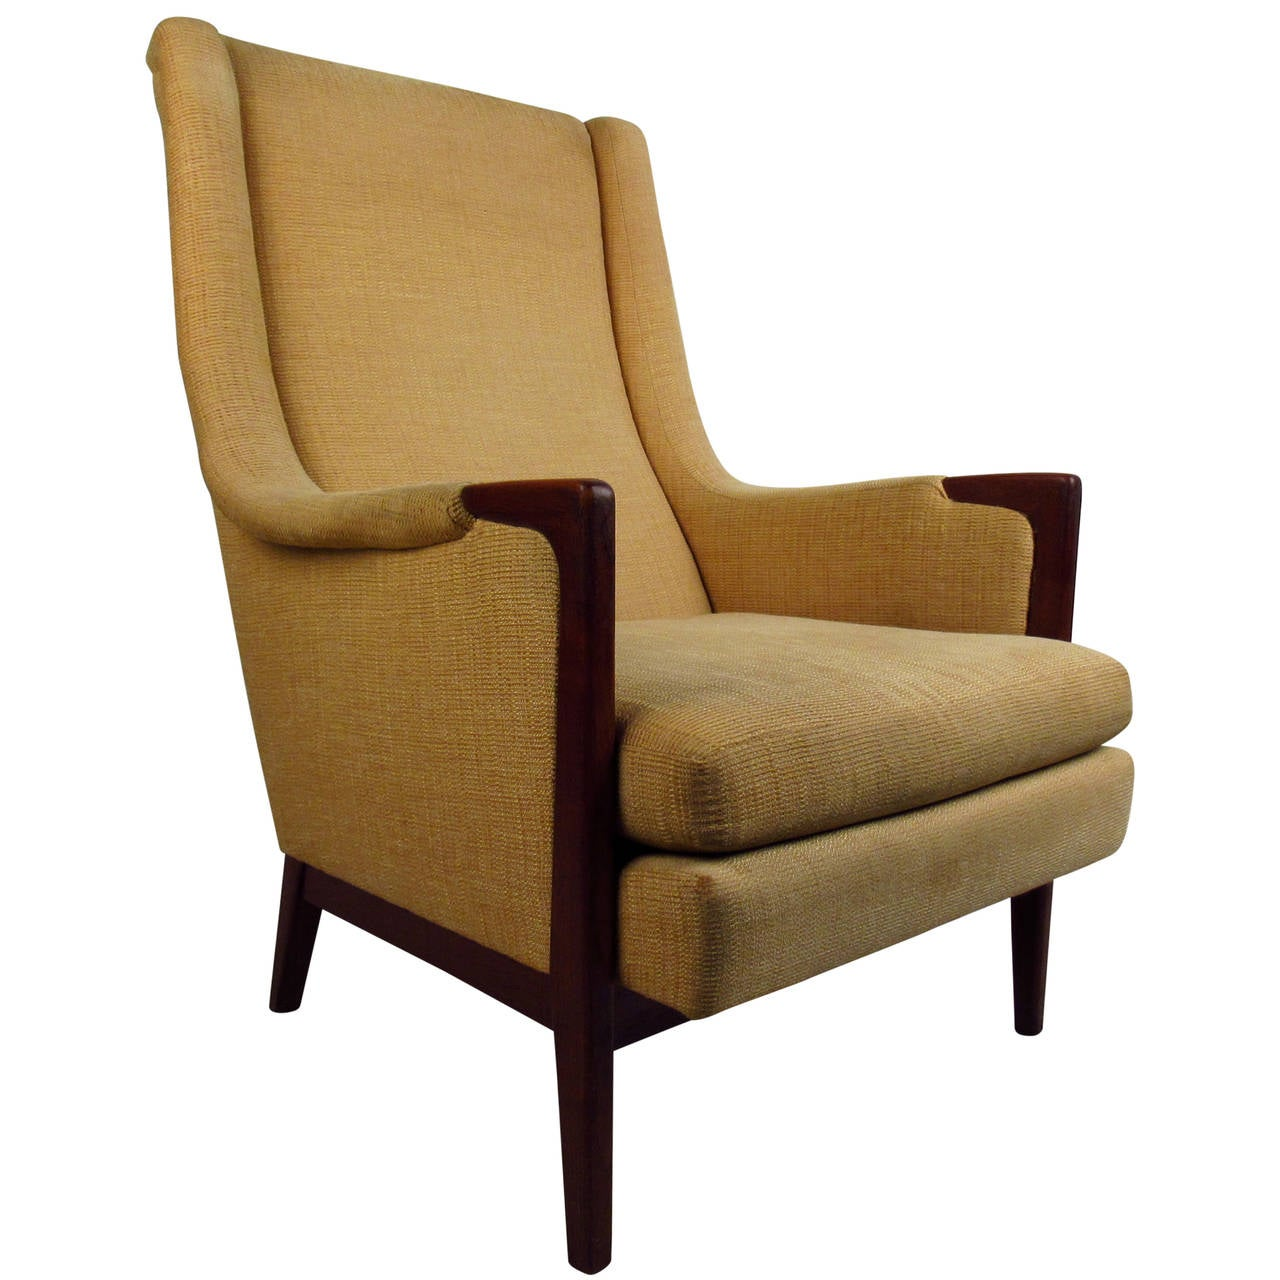 high back contemporary chairs amazon rocking chair mid century modern lounge at 1stdibs